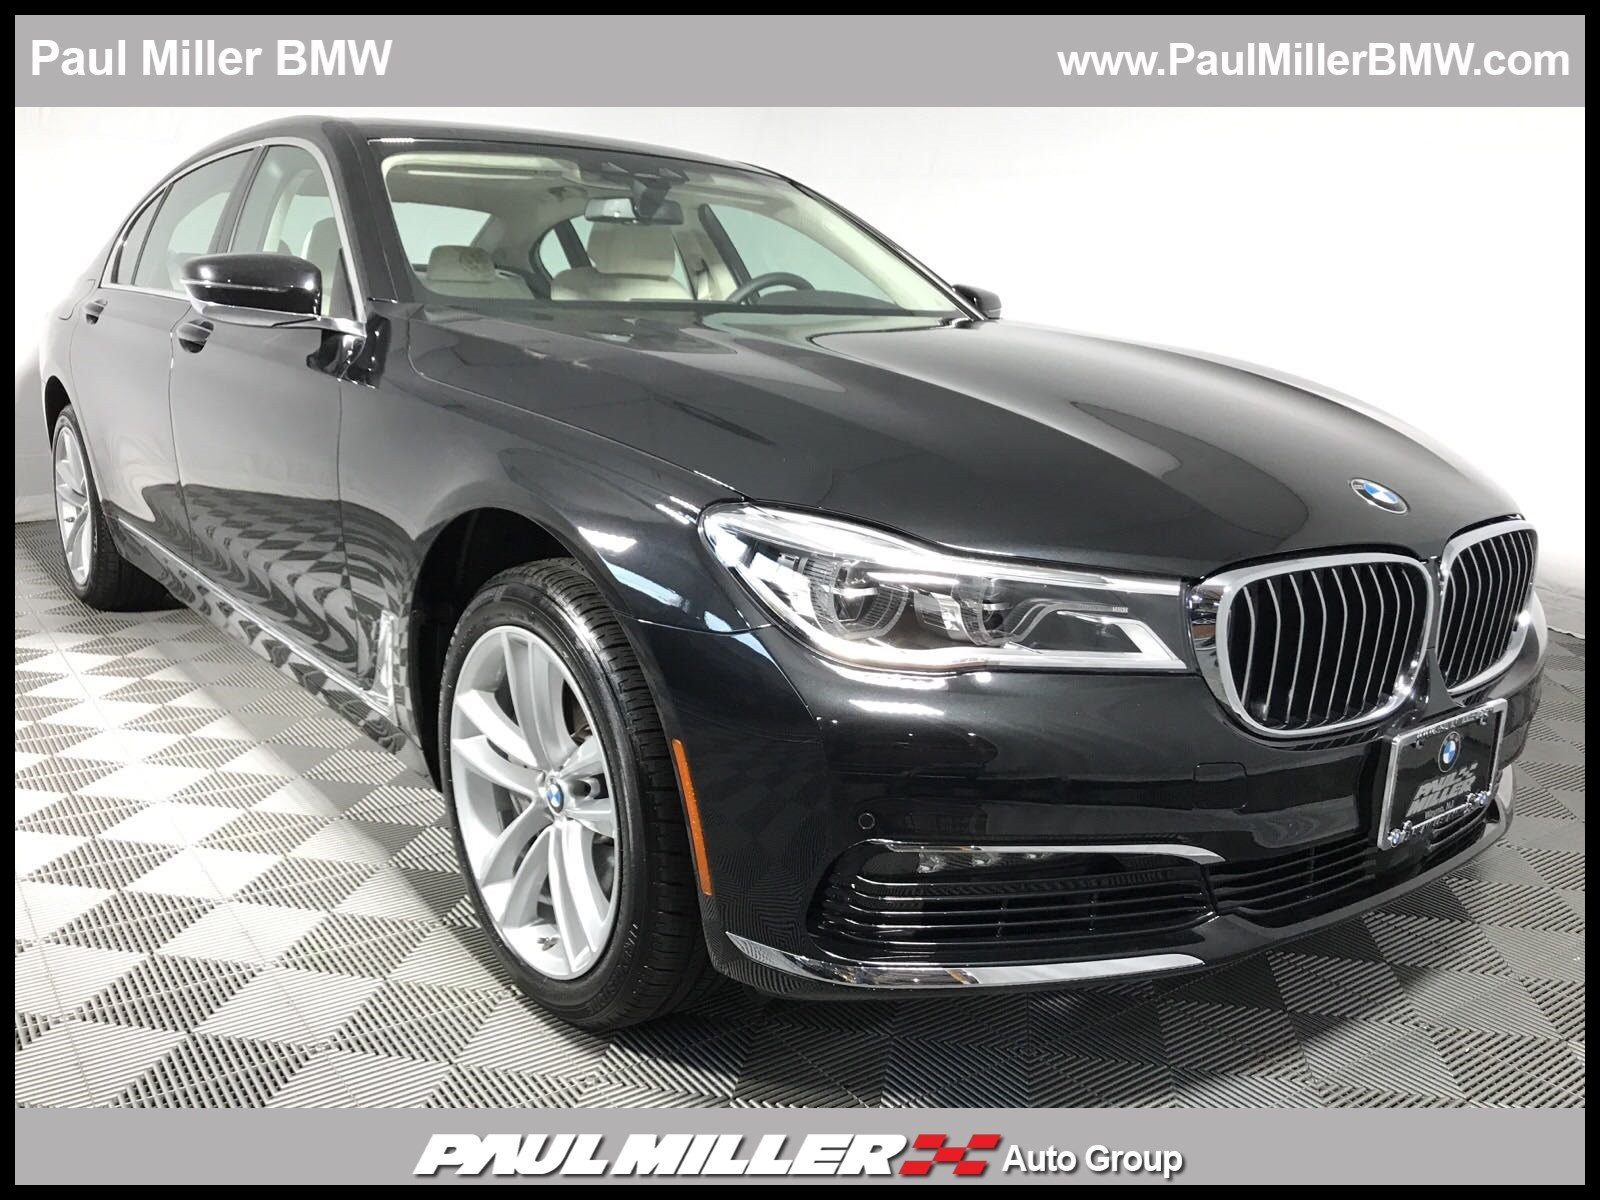 2018 Bmw 760li for Sale Luxury Certified Pre Owned 2018 Bmw 7 Series 4dr Car In